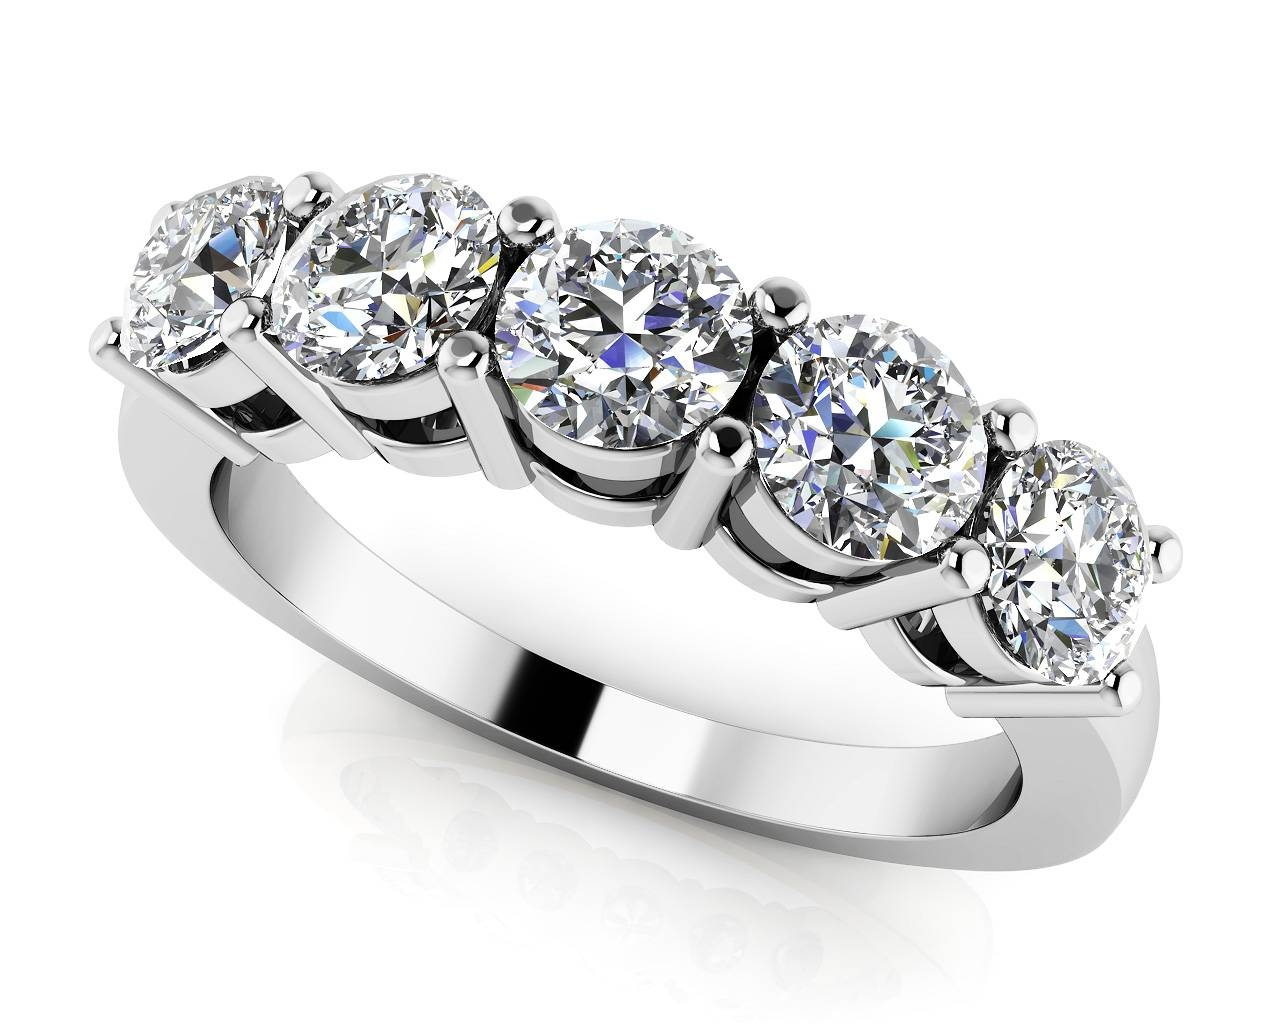 Design Your Own Diamond Anniversary Ring & Eternity Ring In Most Up To Date Diamond Wedding Anniversary Rings (View 6 of 25)